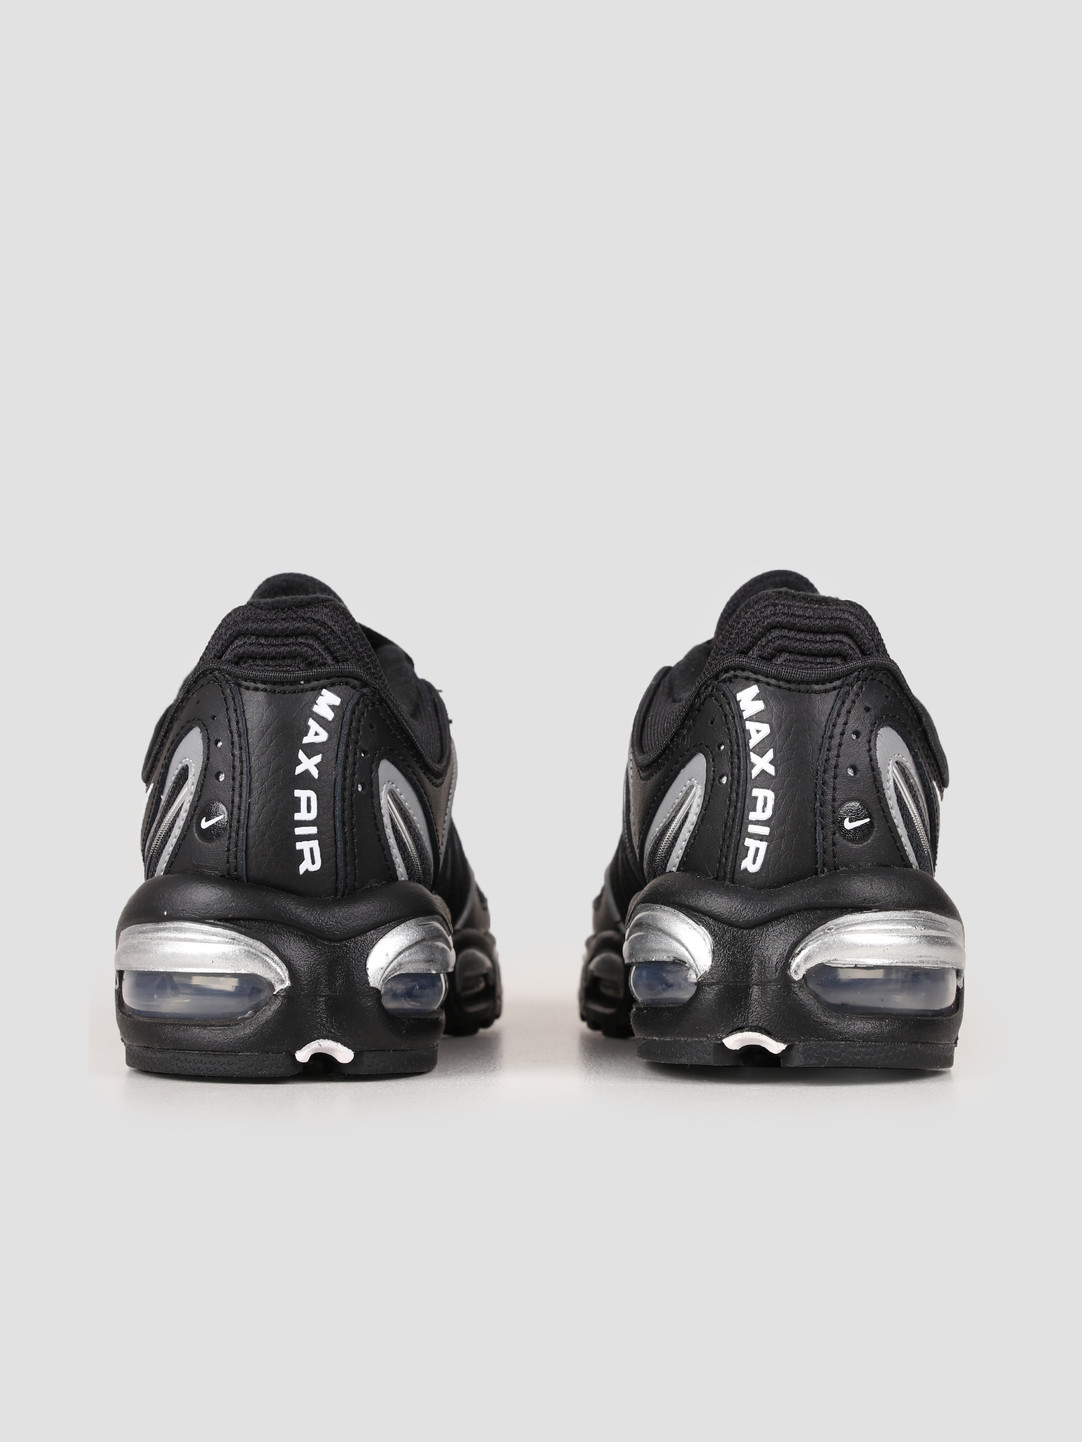 Nike Air Max Tailwind Iv Black White Metallic Silver AQ2567 003